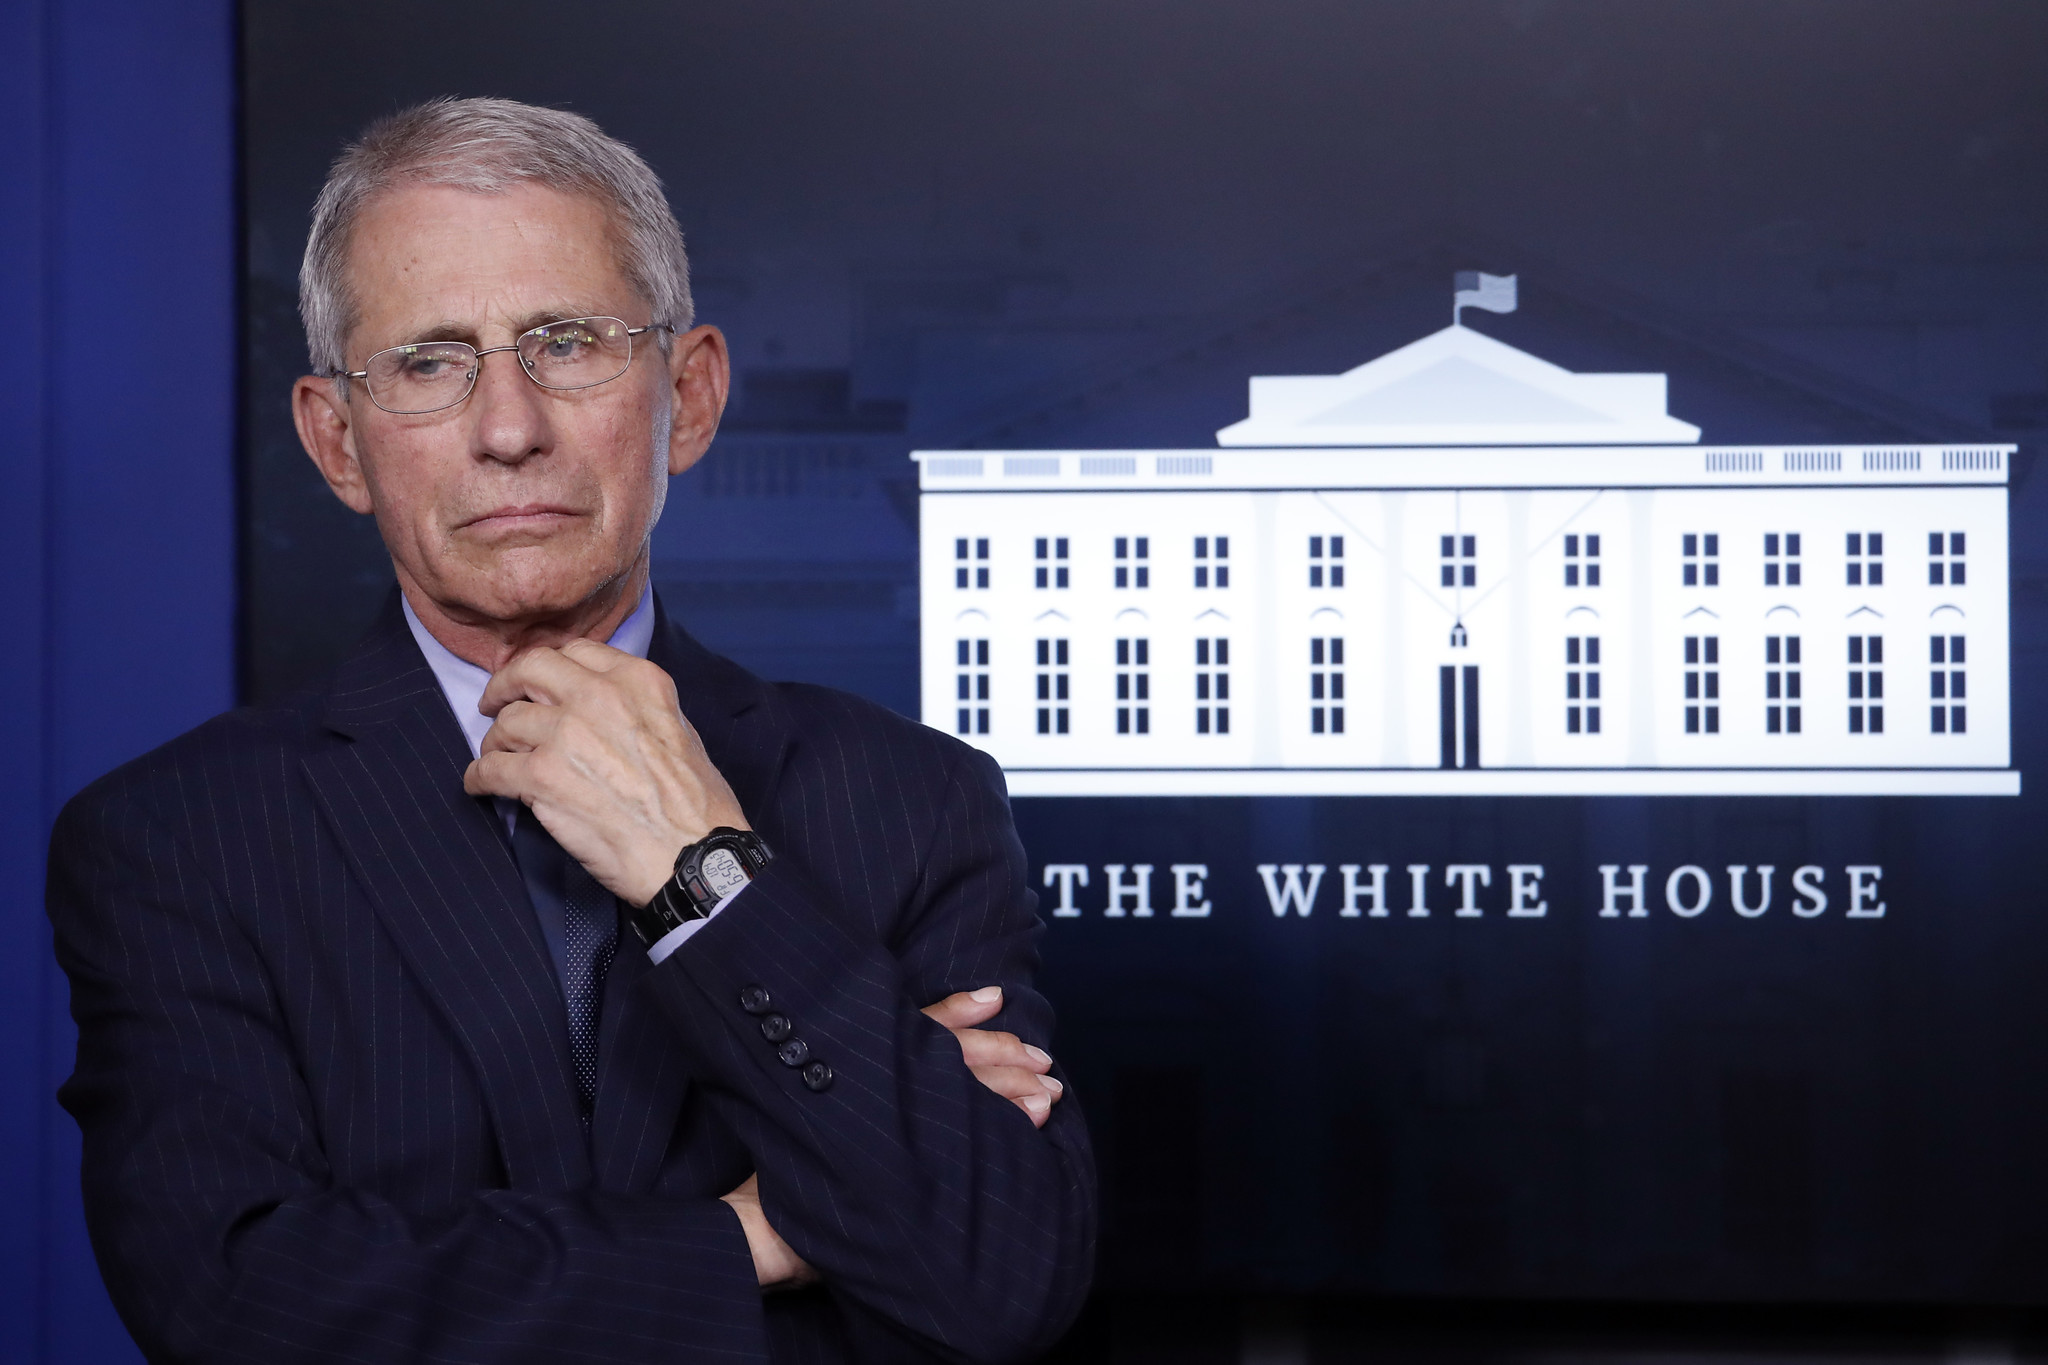 Coronavirus could become 'seasonal' threat, says Dr. Anthony Fauci